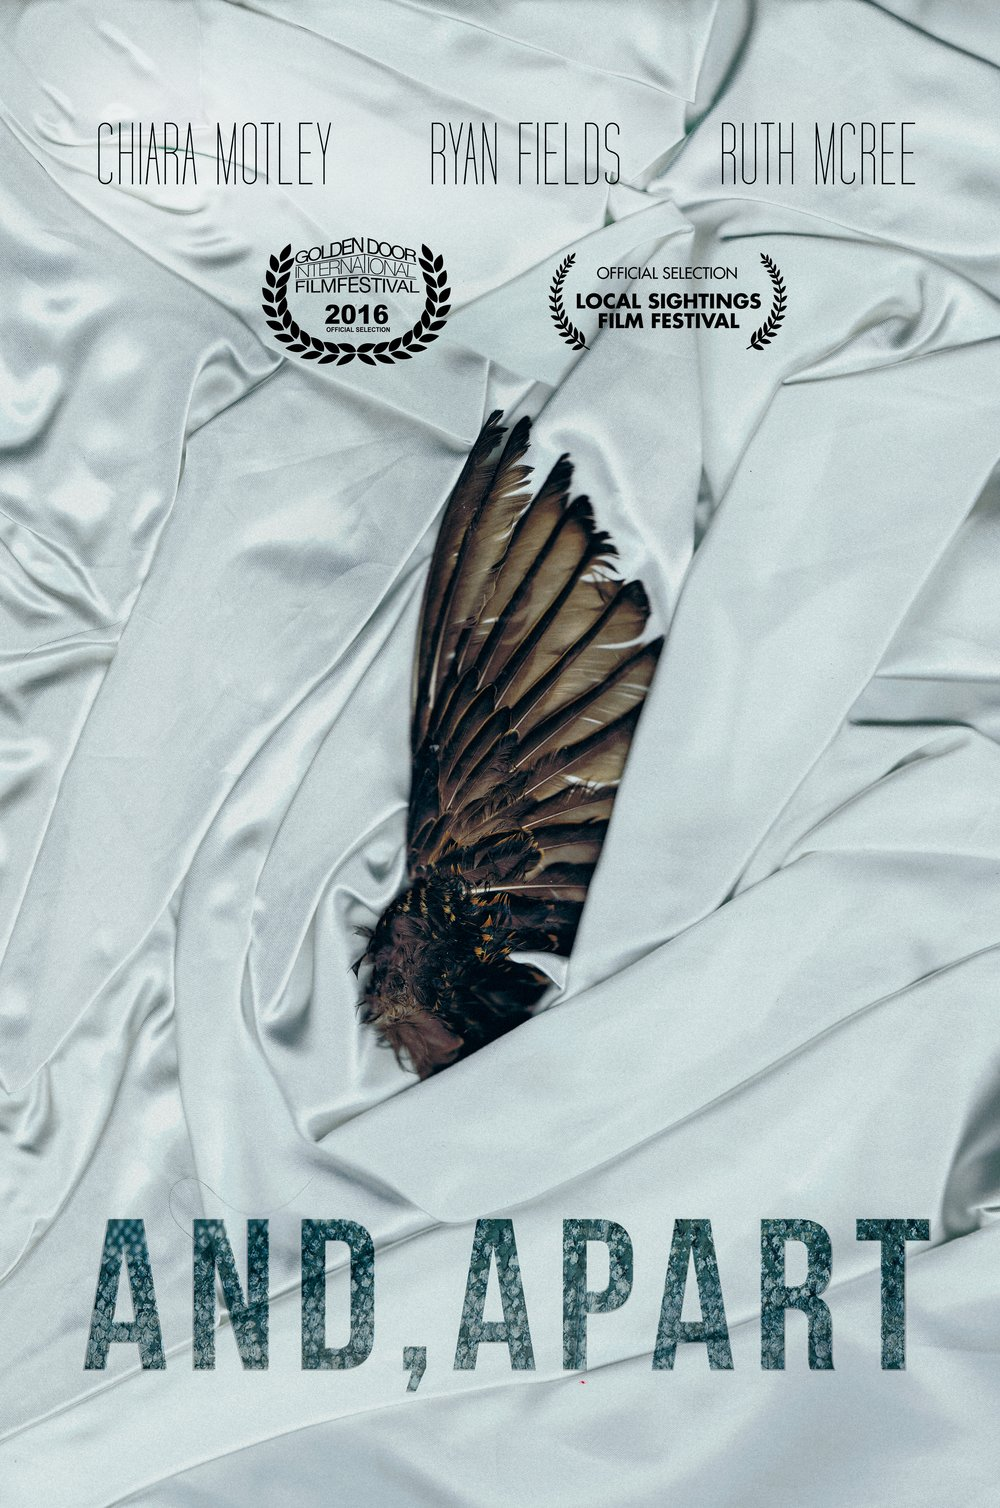 AND, APART is premiering September 25, 2016 at the Golden Door Film Festival.